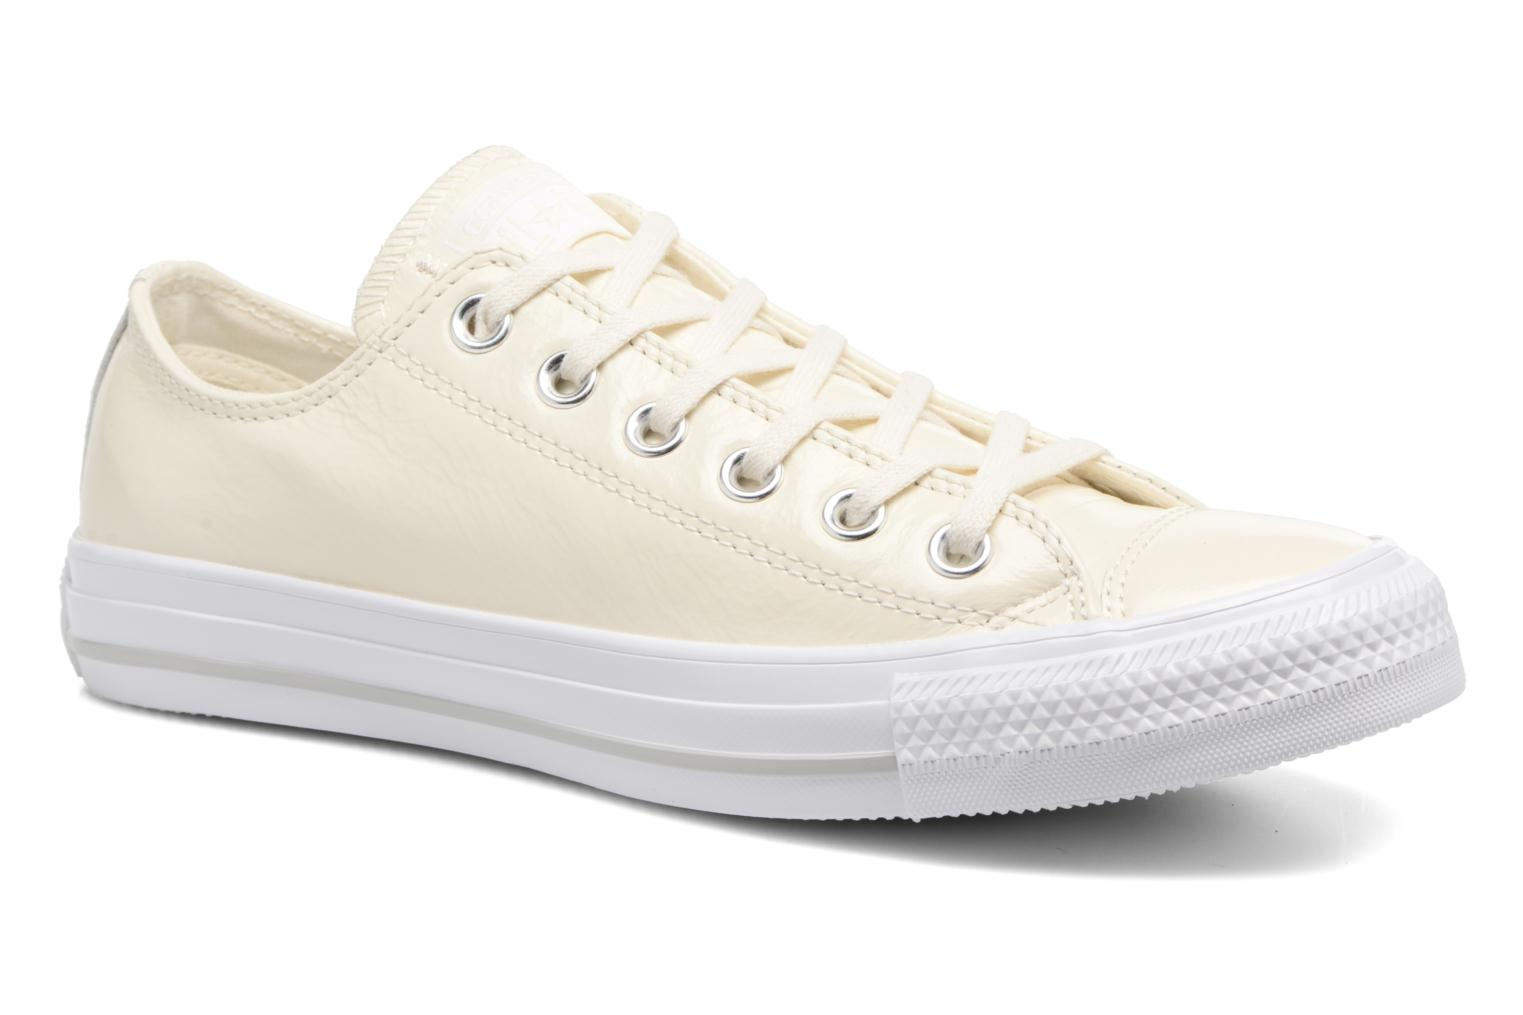 Sneakers Chuck Taylor All Star Crinkled Patent Leather Ox by ConverseConverseWitPaar schoenen - Sneakers88875505531136Lakleer